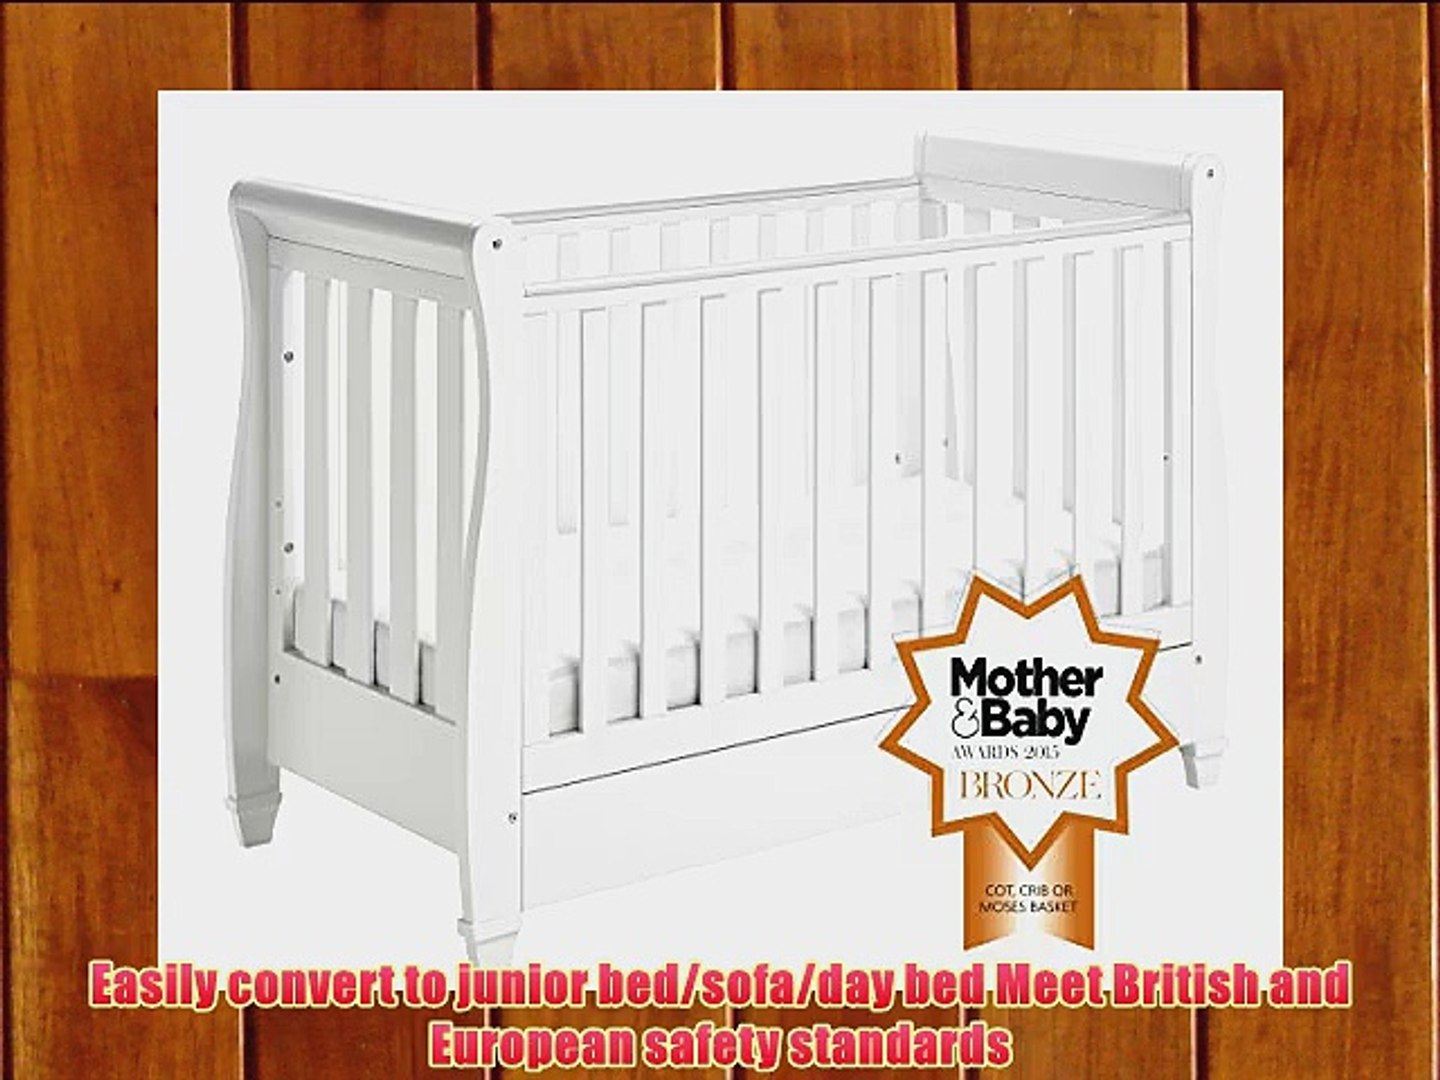 Babymore Eva Sleigh Cot Bed Dropside with Drawer (White Finish) FOAM  MATTRESS